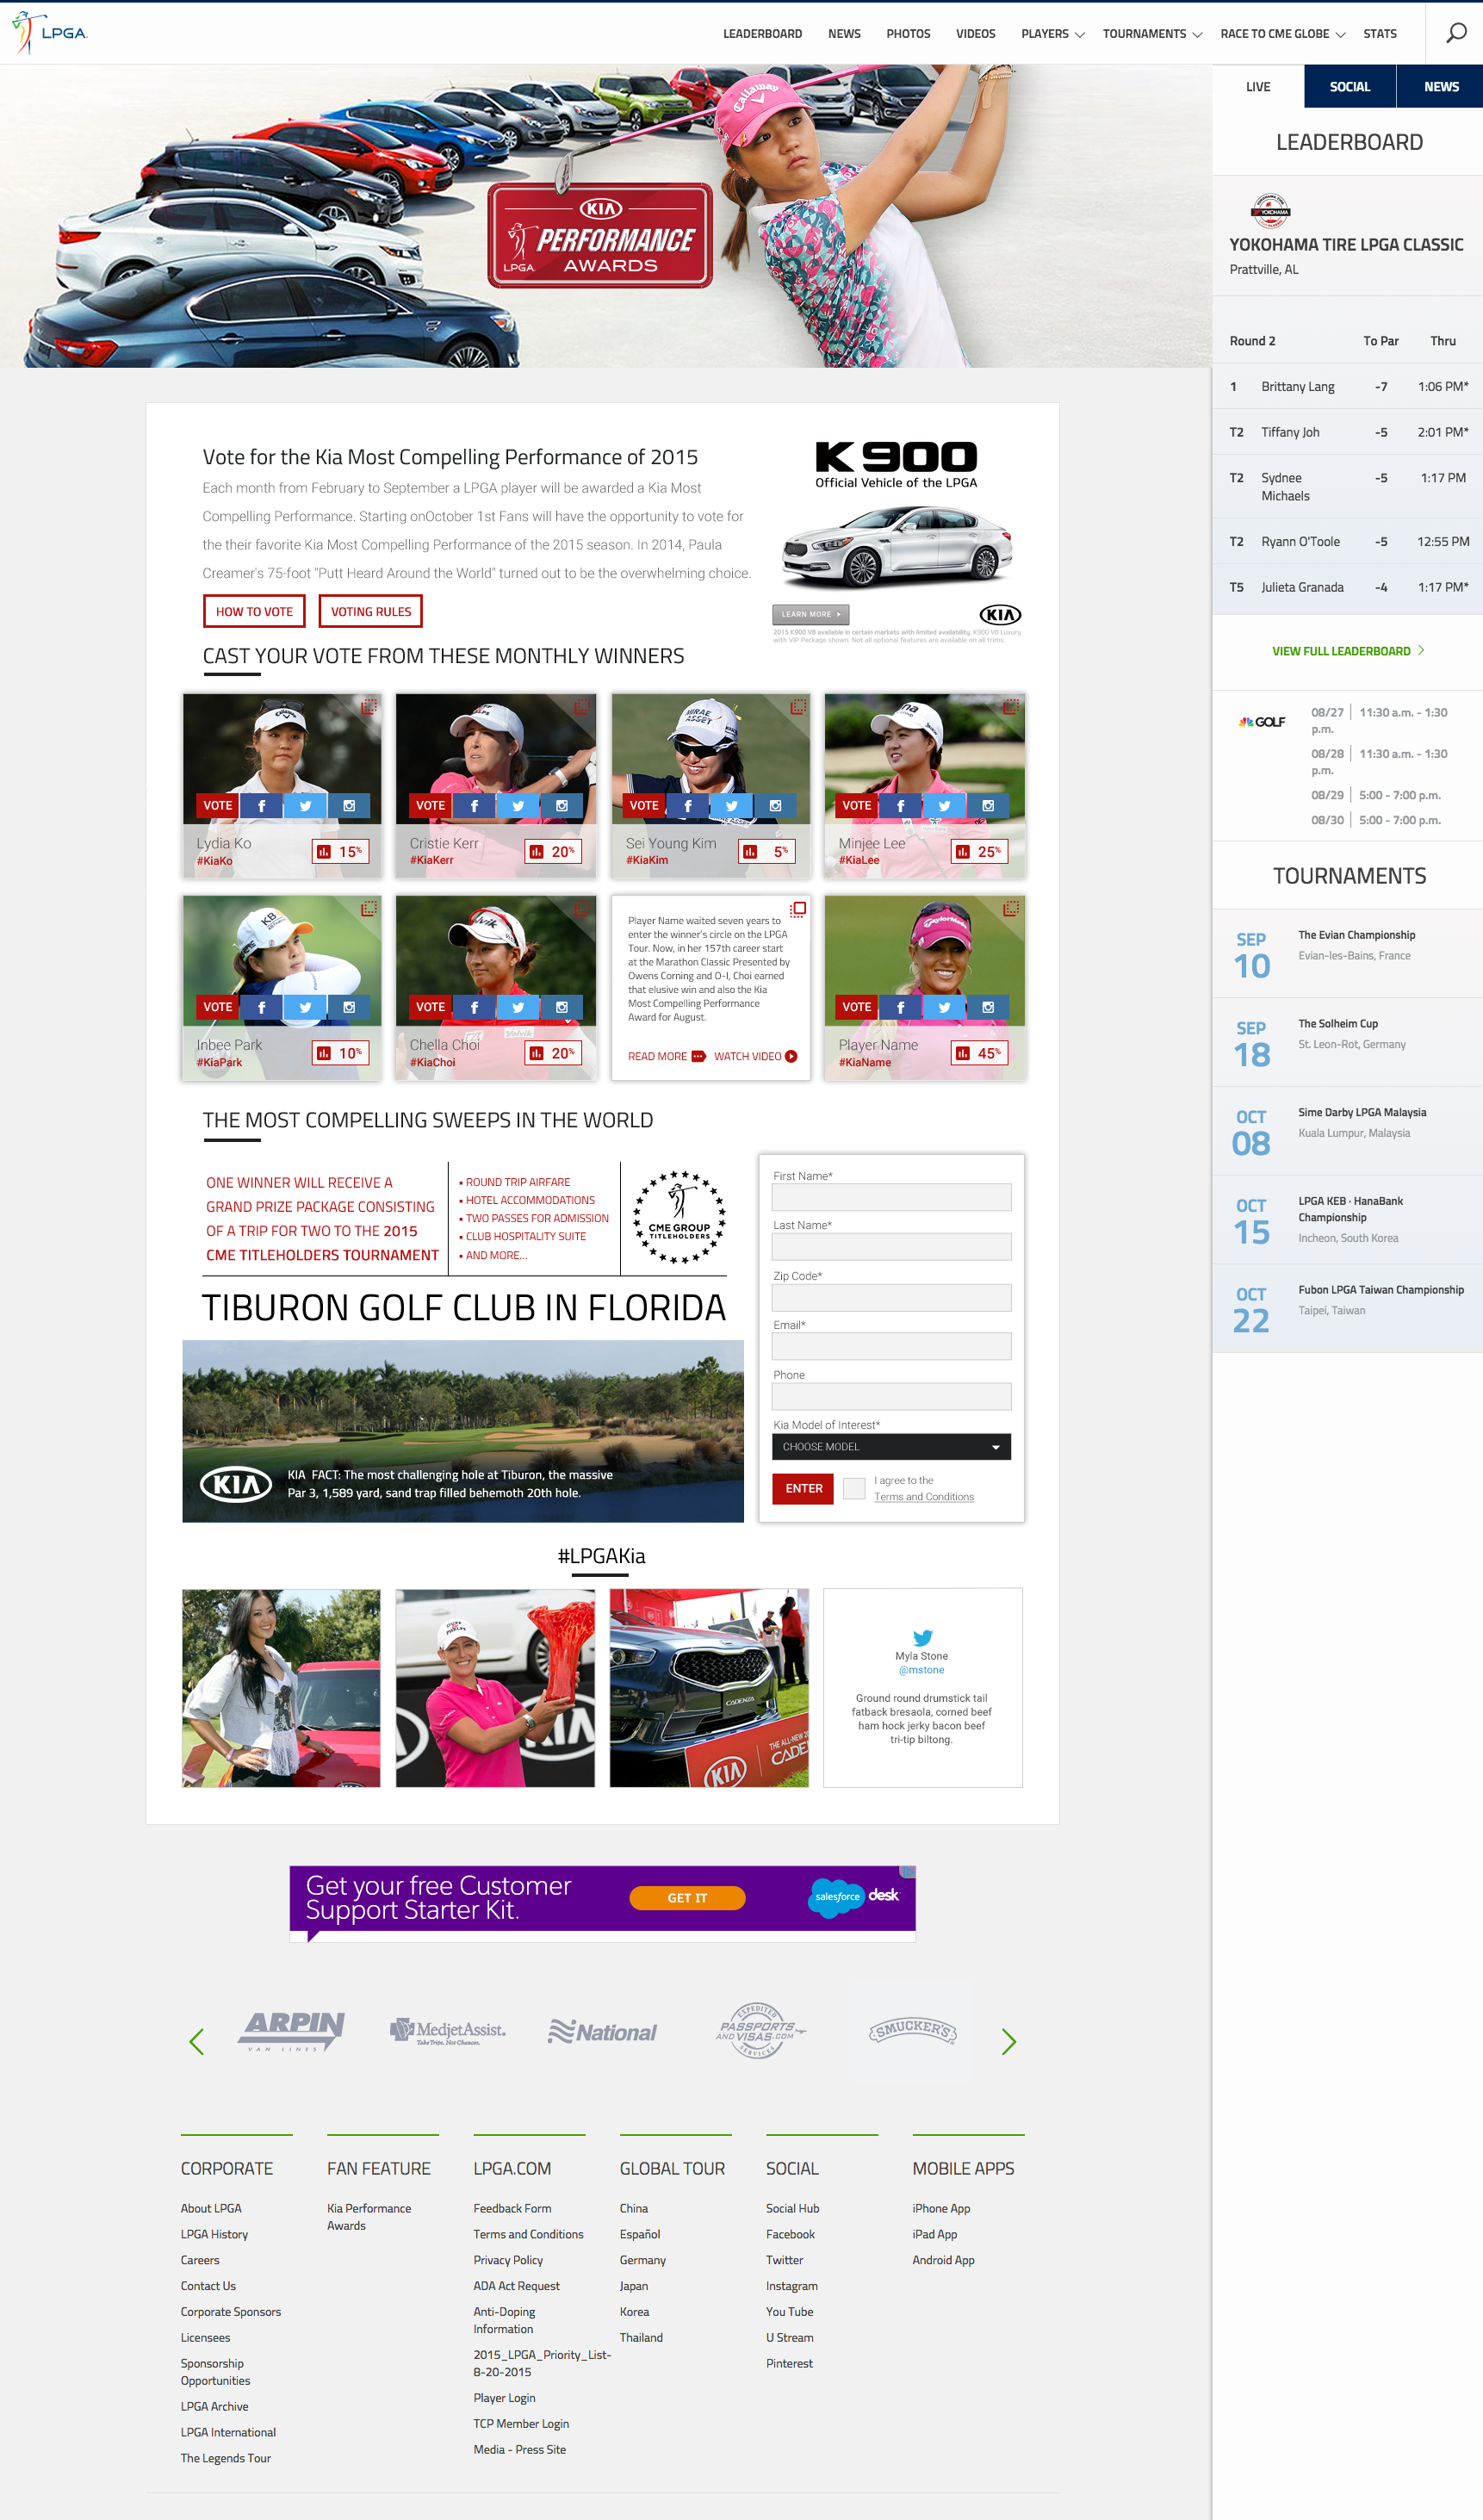 LPGA-Kia-Performance-Awards-Full-Page-Mock